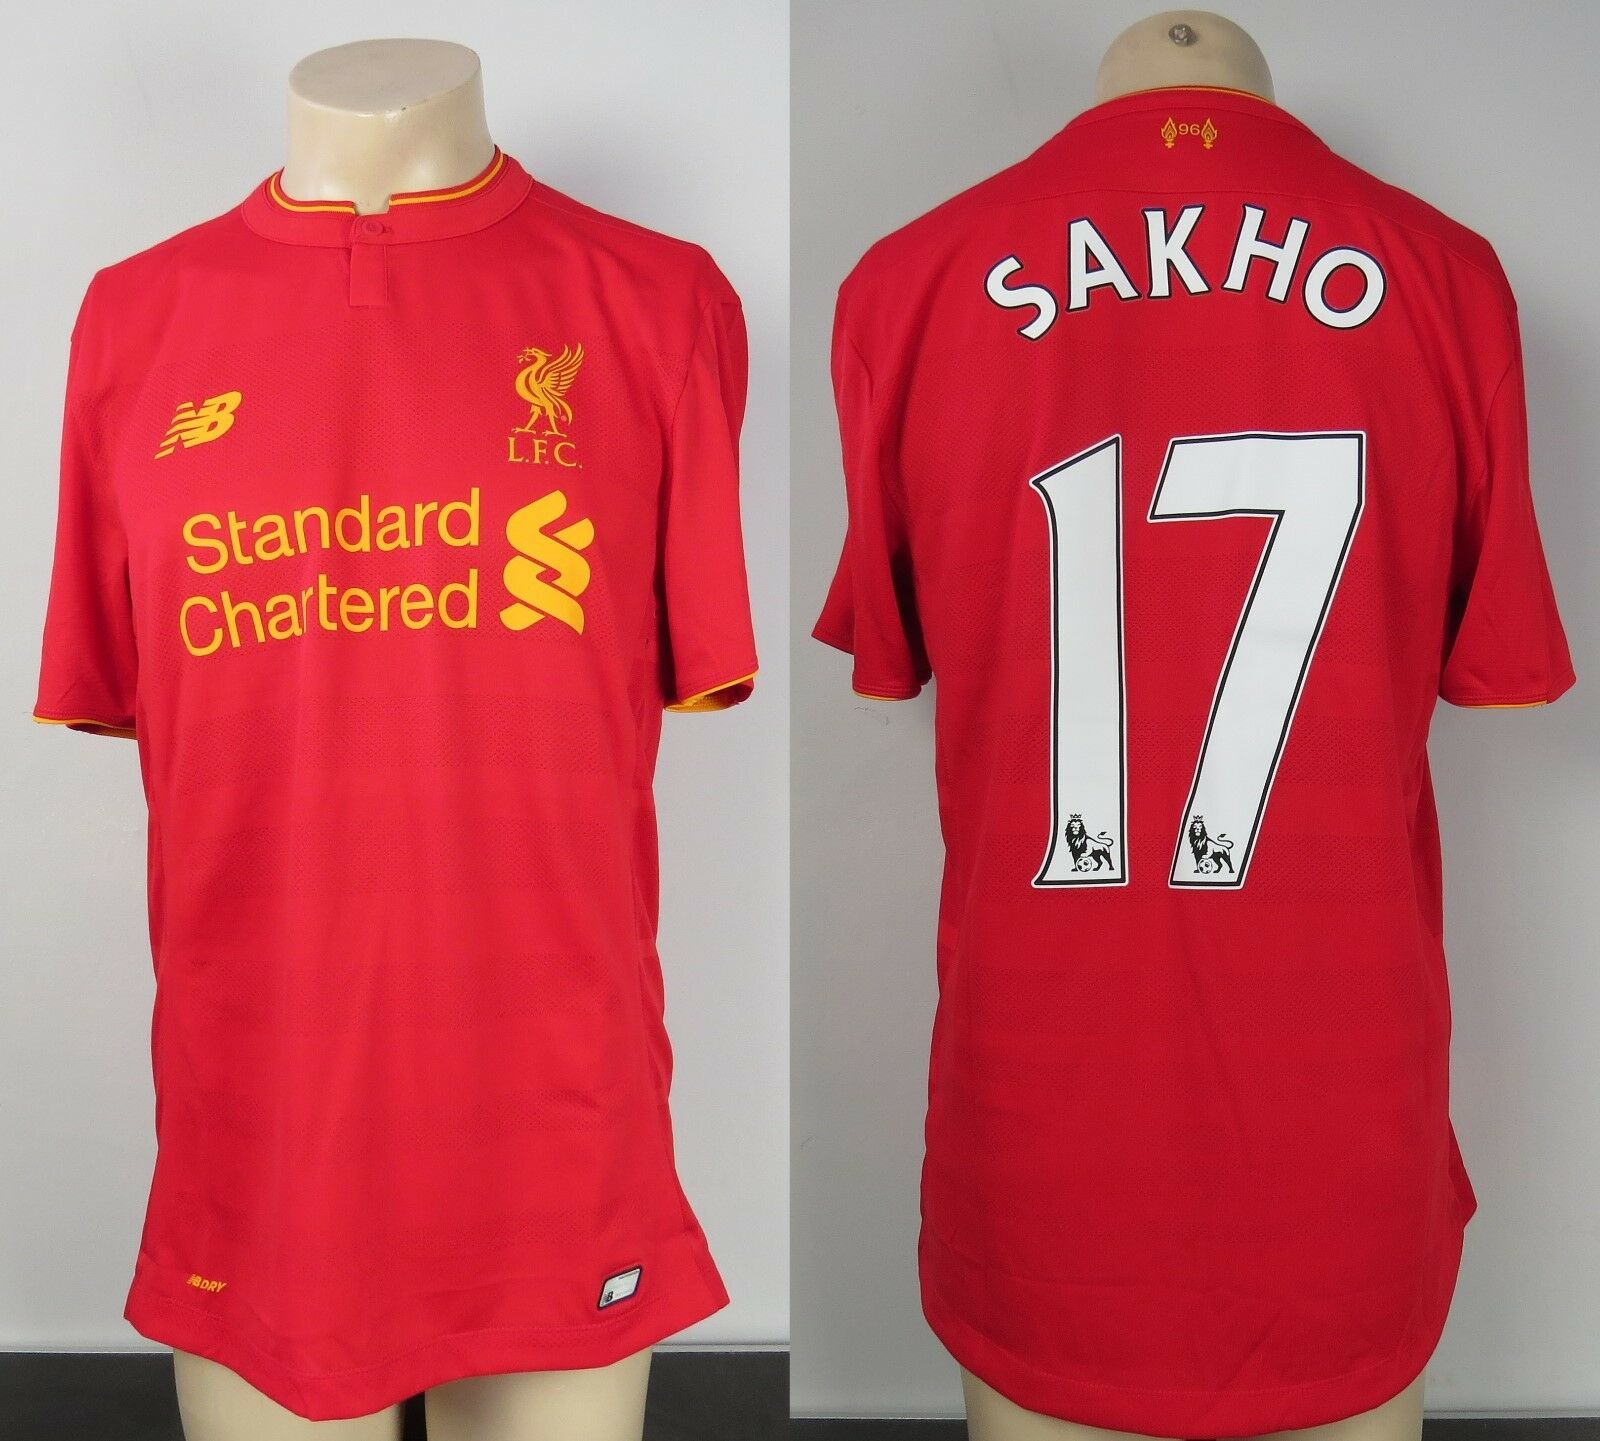 MATCH ISSUE SHIRT LIVERPOOL 201617 preStagione Home SOCCER JERSEY sakho 17